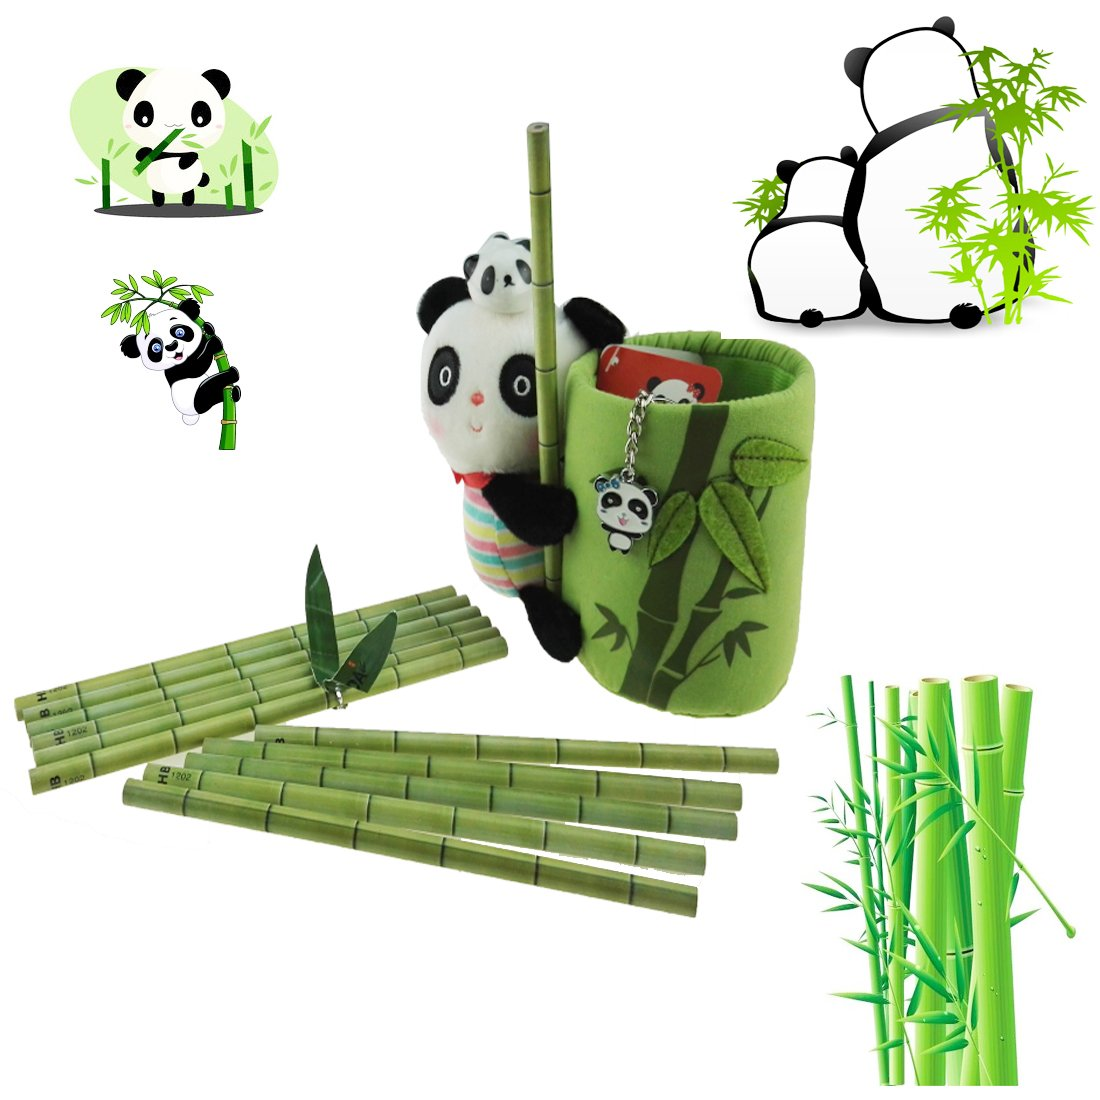 Panda and Bamboo Theme Stationery Set Include 12pcs Bamboo Pencils 1pc Pencil Holder 1pc panda Keychain 1pc Ceramic Panda Toy For Kids Study Gift